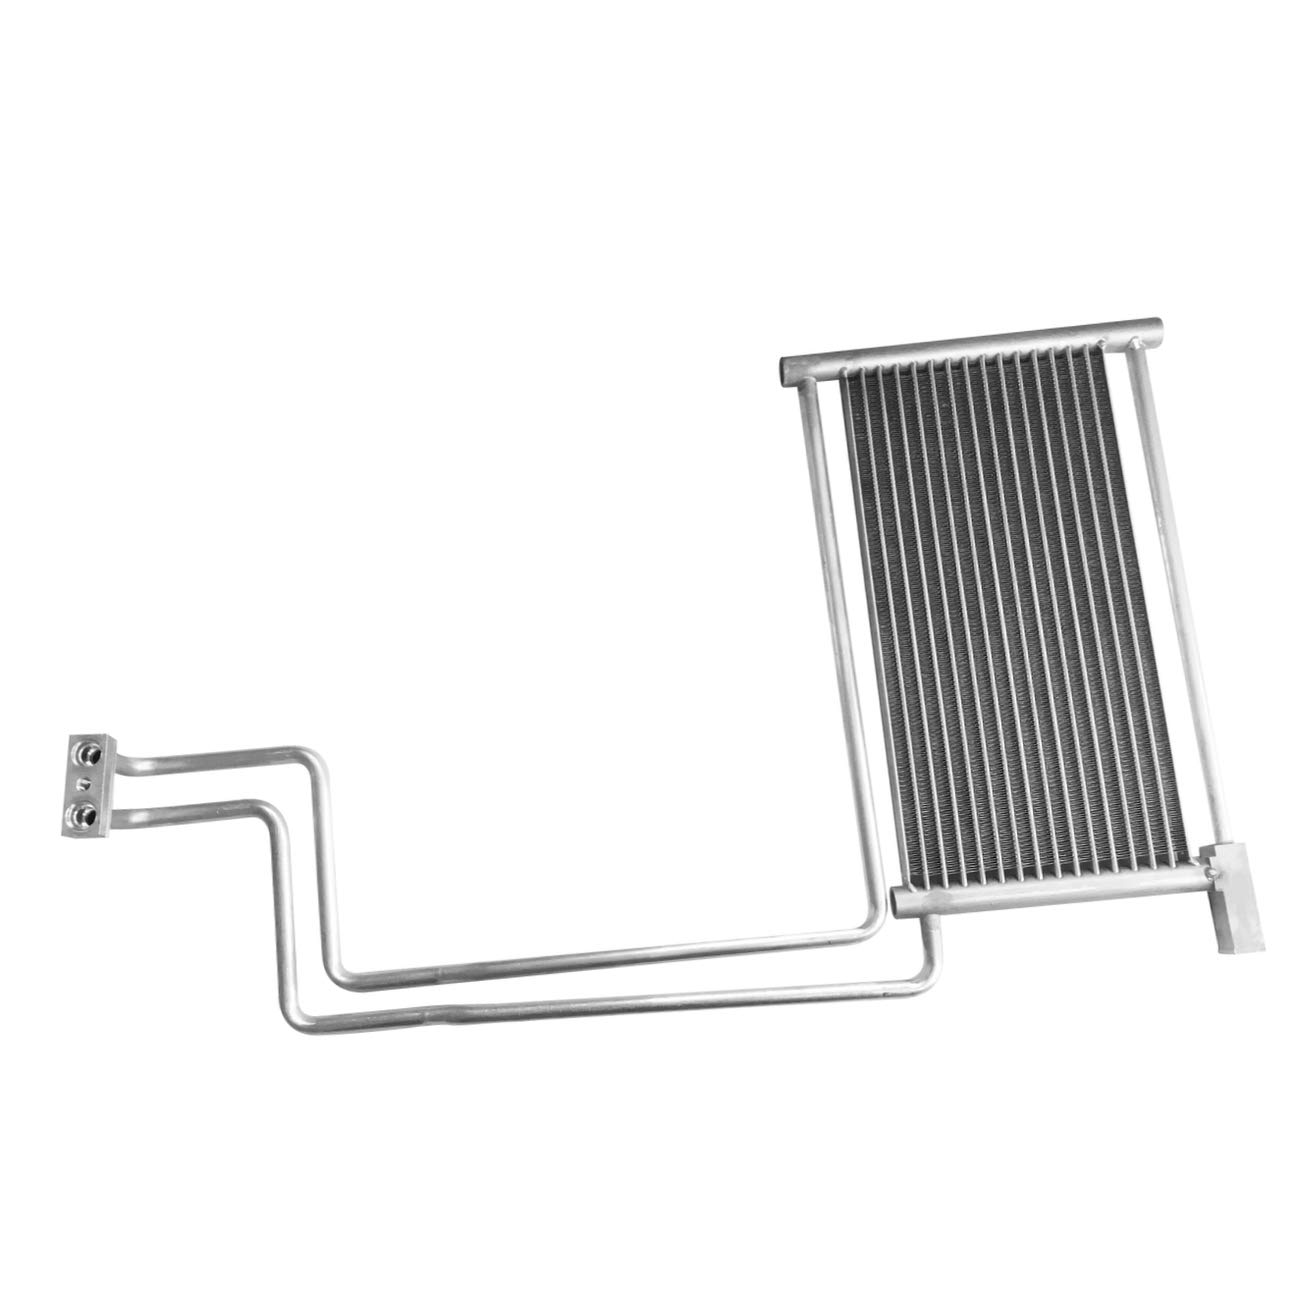 SKP SKTOC005 Transmission Oil Cooler